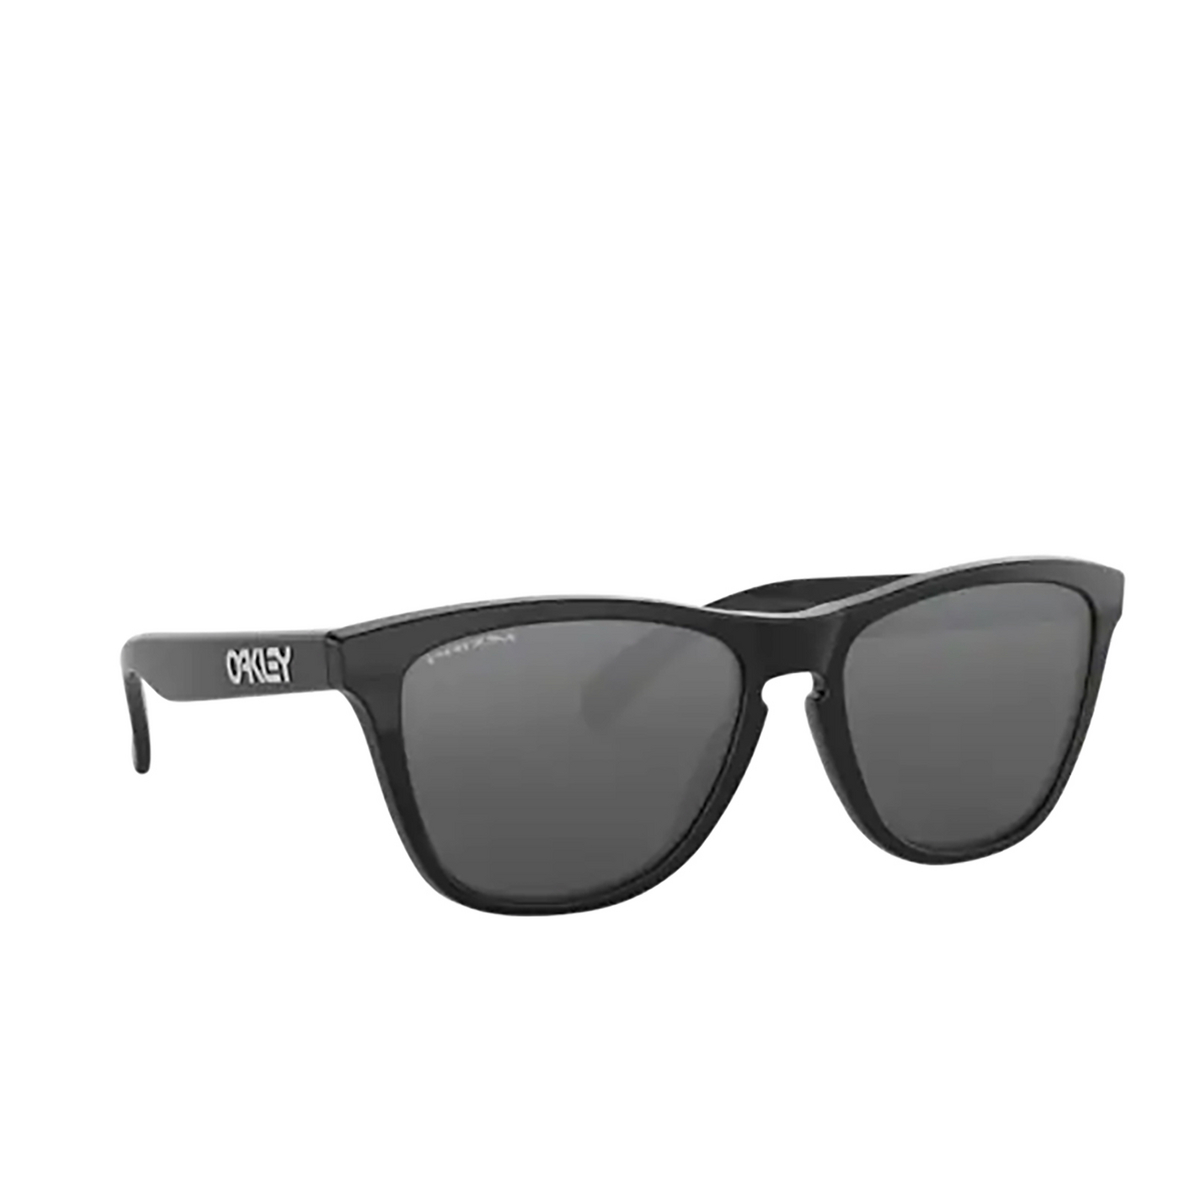 Oakley® Square Sunglasses: Frogskins OO9013 color Polished Black 9013C4 - three-quarters view.